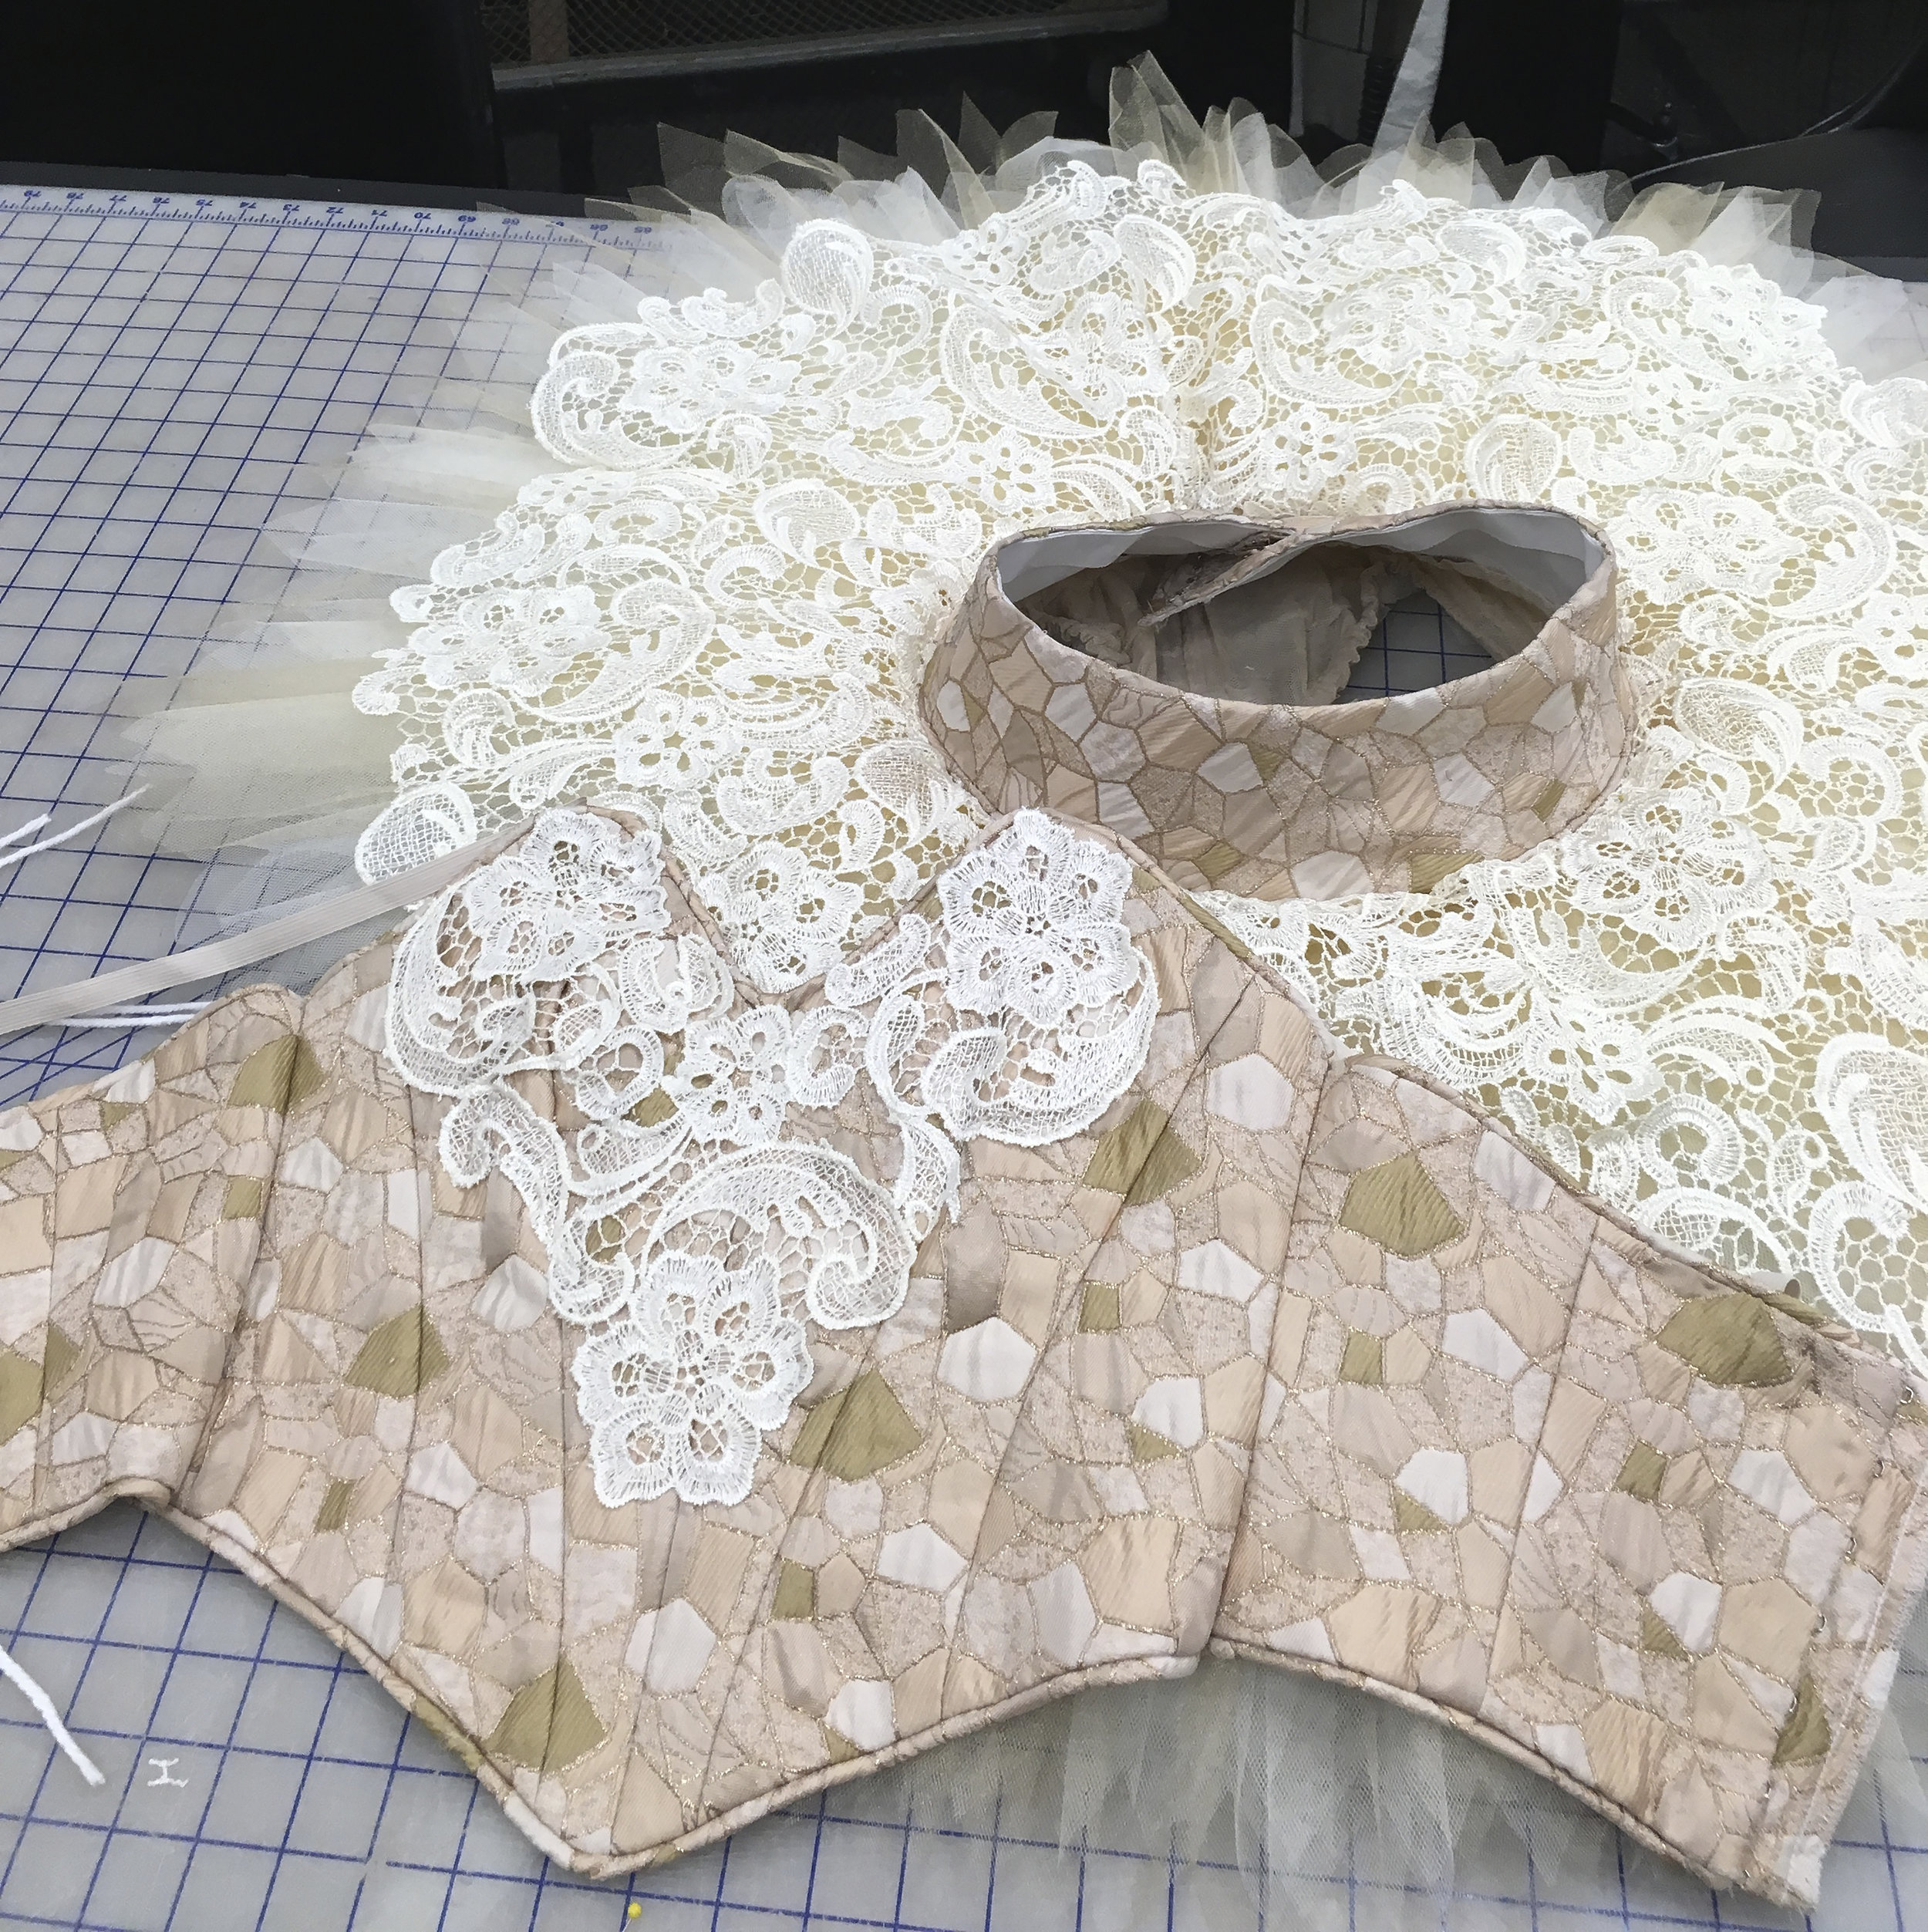 Bodice detail with alternate lace decoration.